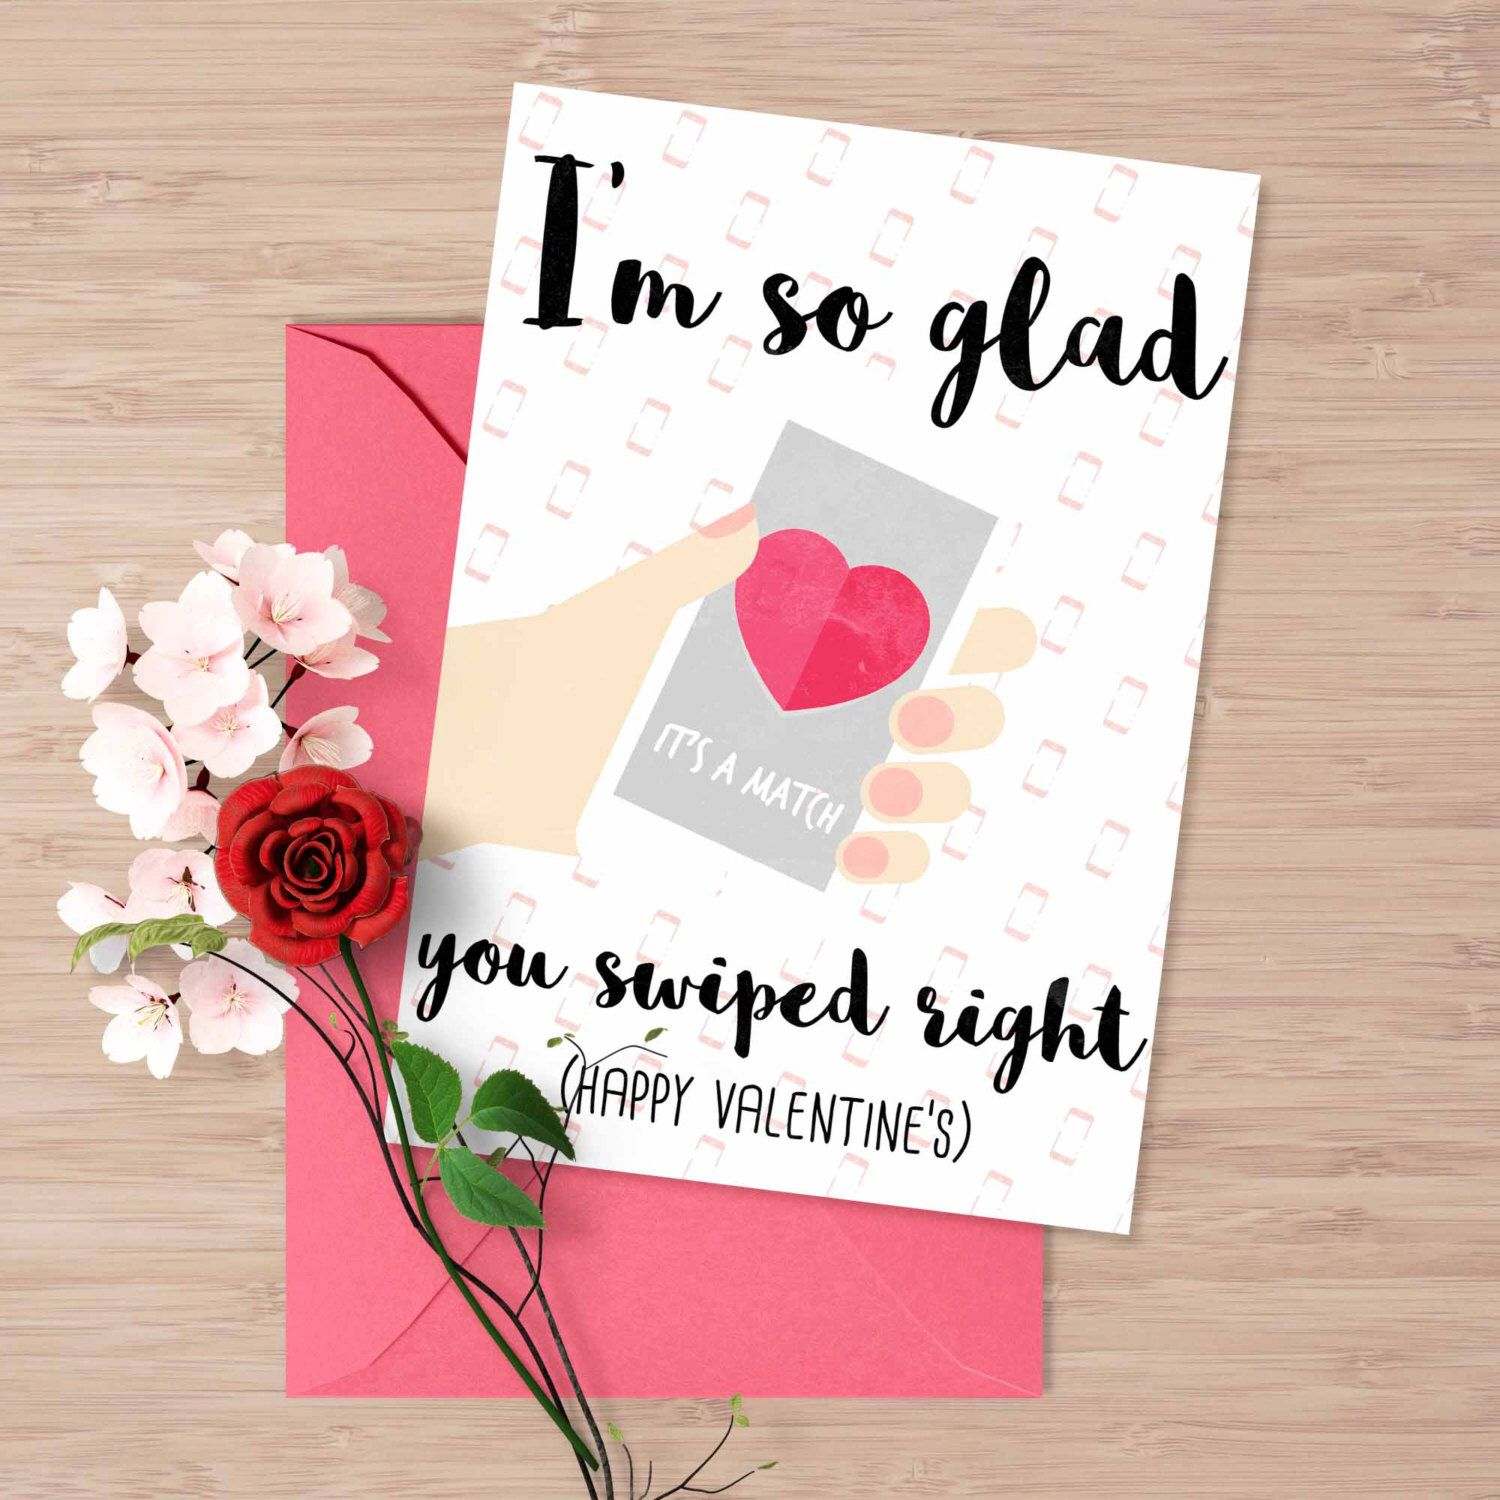 new to designgenesstudio on etsy tinder valentines day card i am so glad you swiped right tinder funny valentines card card for him card for her online - Etsy Valentines Day Cards